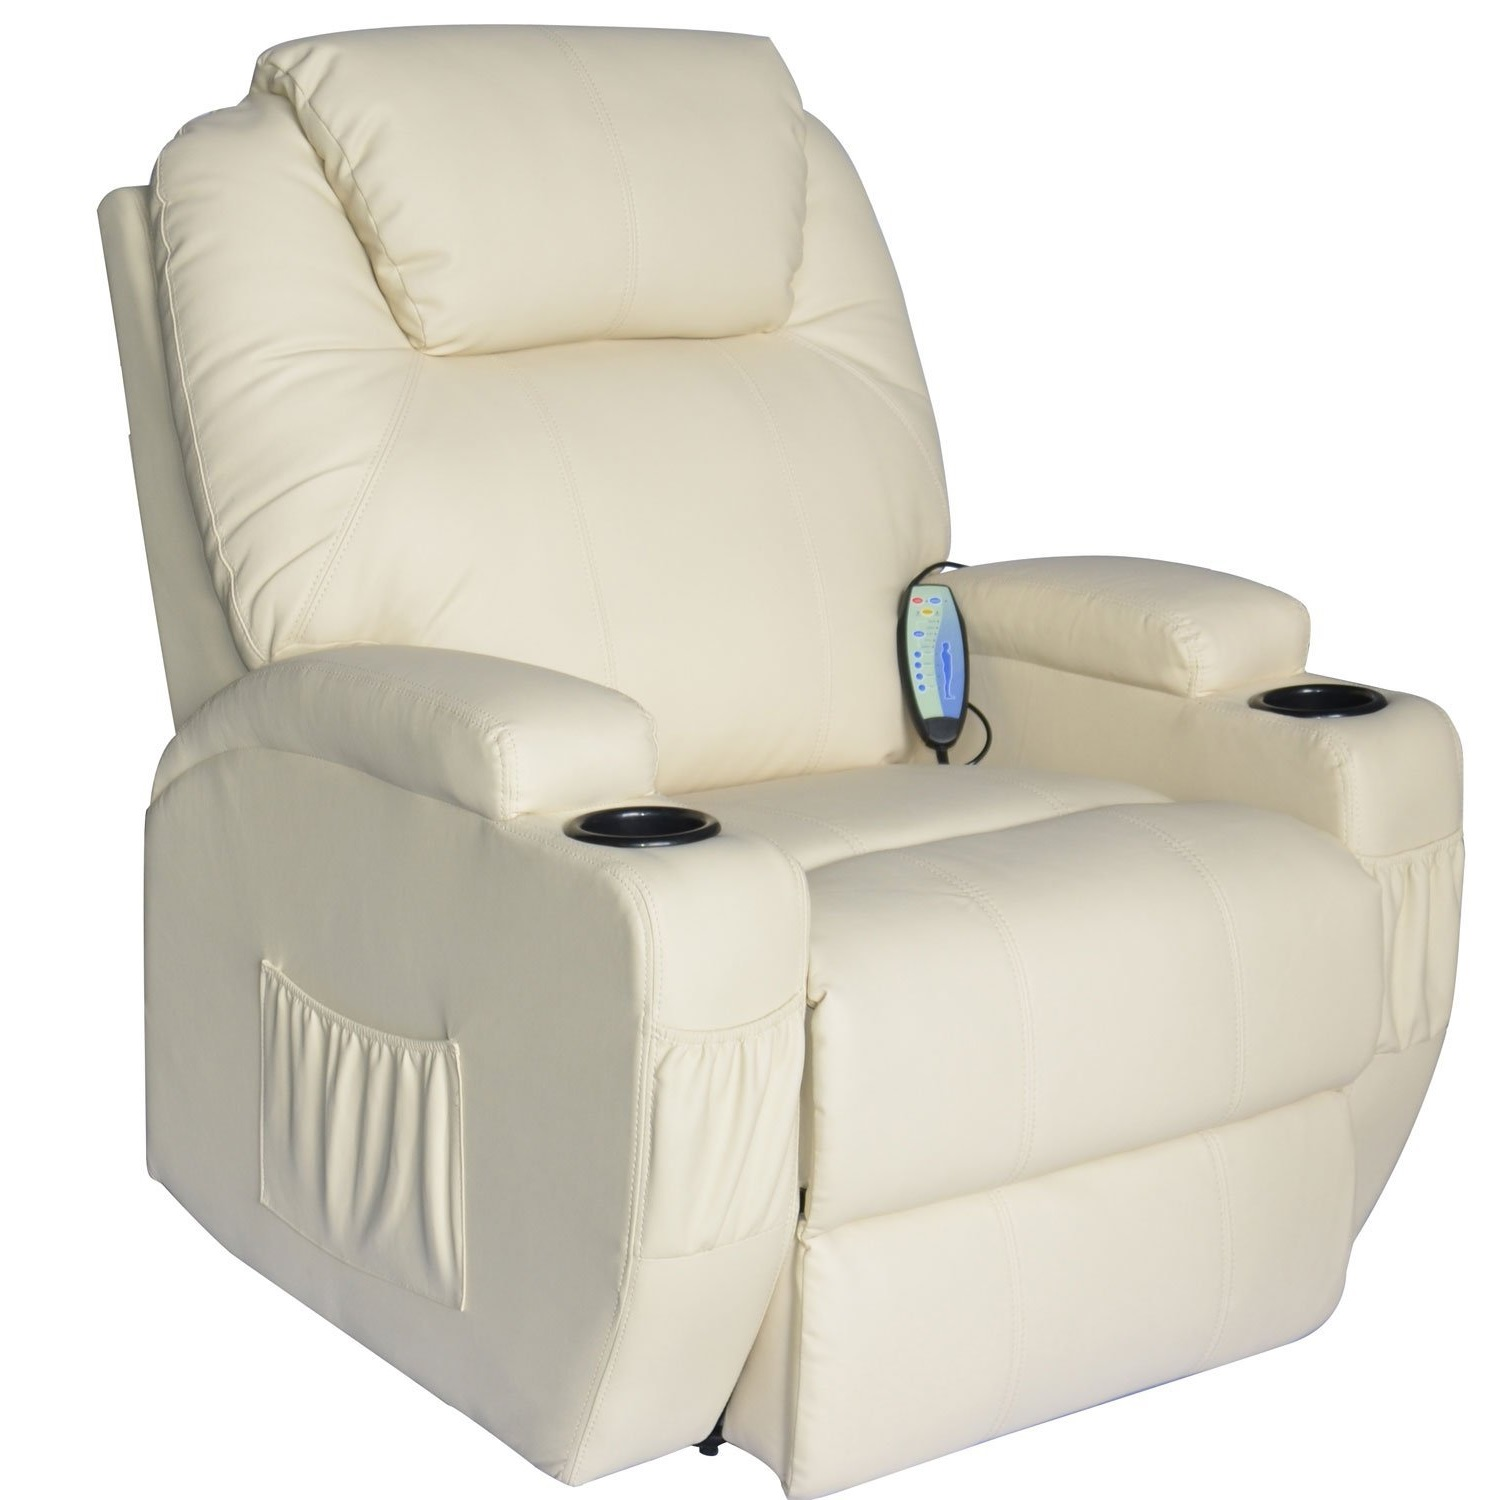 Read our NEW buying guide for Rise Recliner Chairs